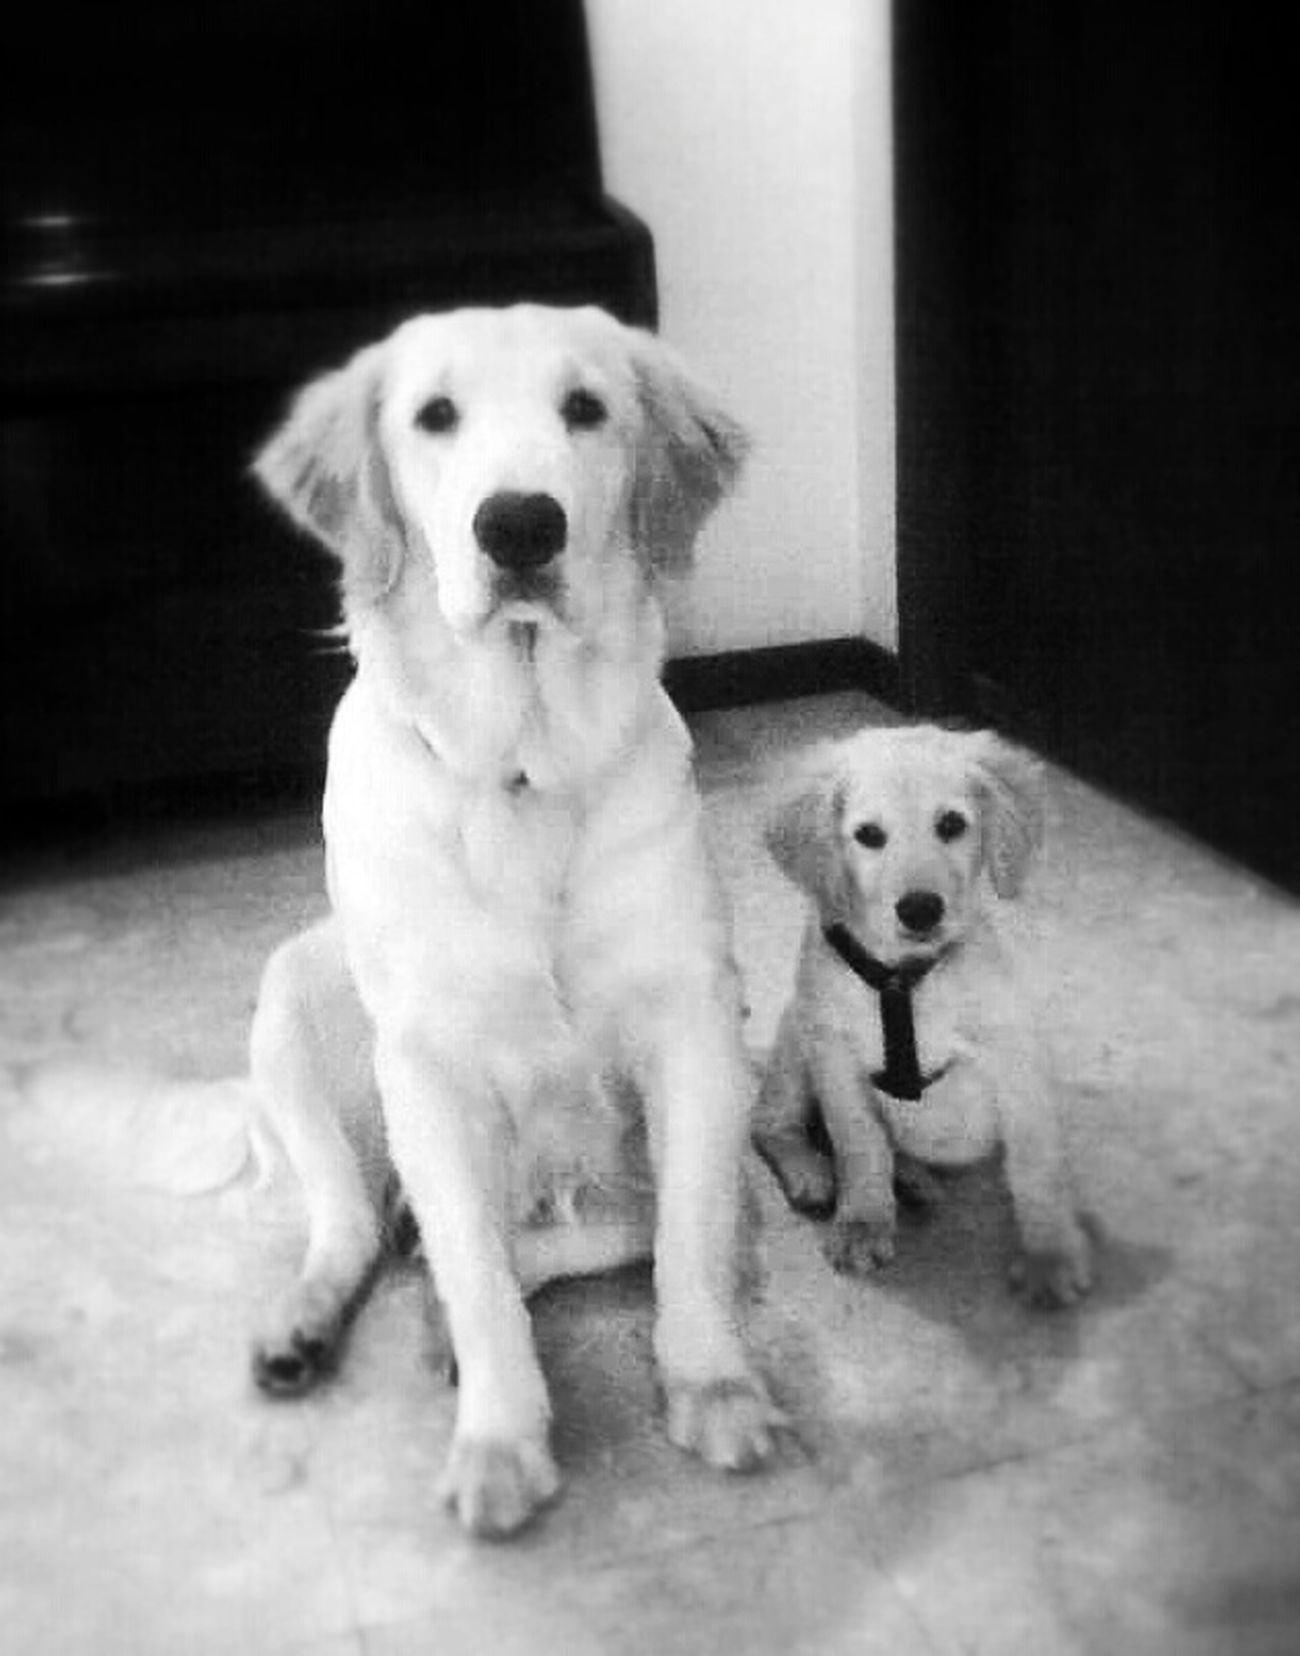 My Babies ♥ Maggie & Tito ♥ Flashback MyLifeMyWorldMyEverything Mydogsarecoolerthanyourkids Goldenretriever Love Popular Photos Dog Dog Love Doggy Love Taking Photos